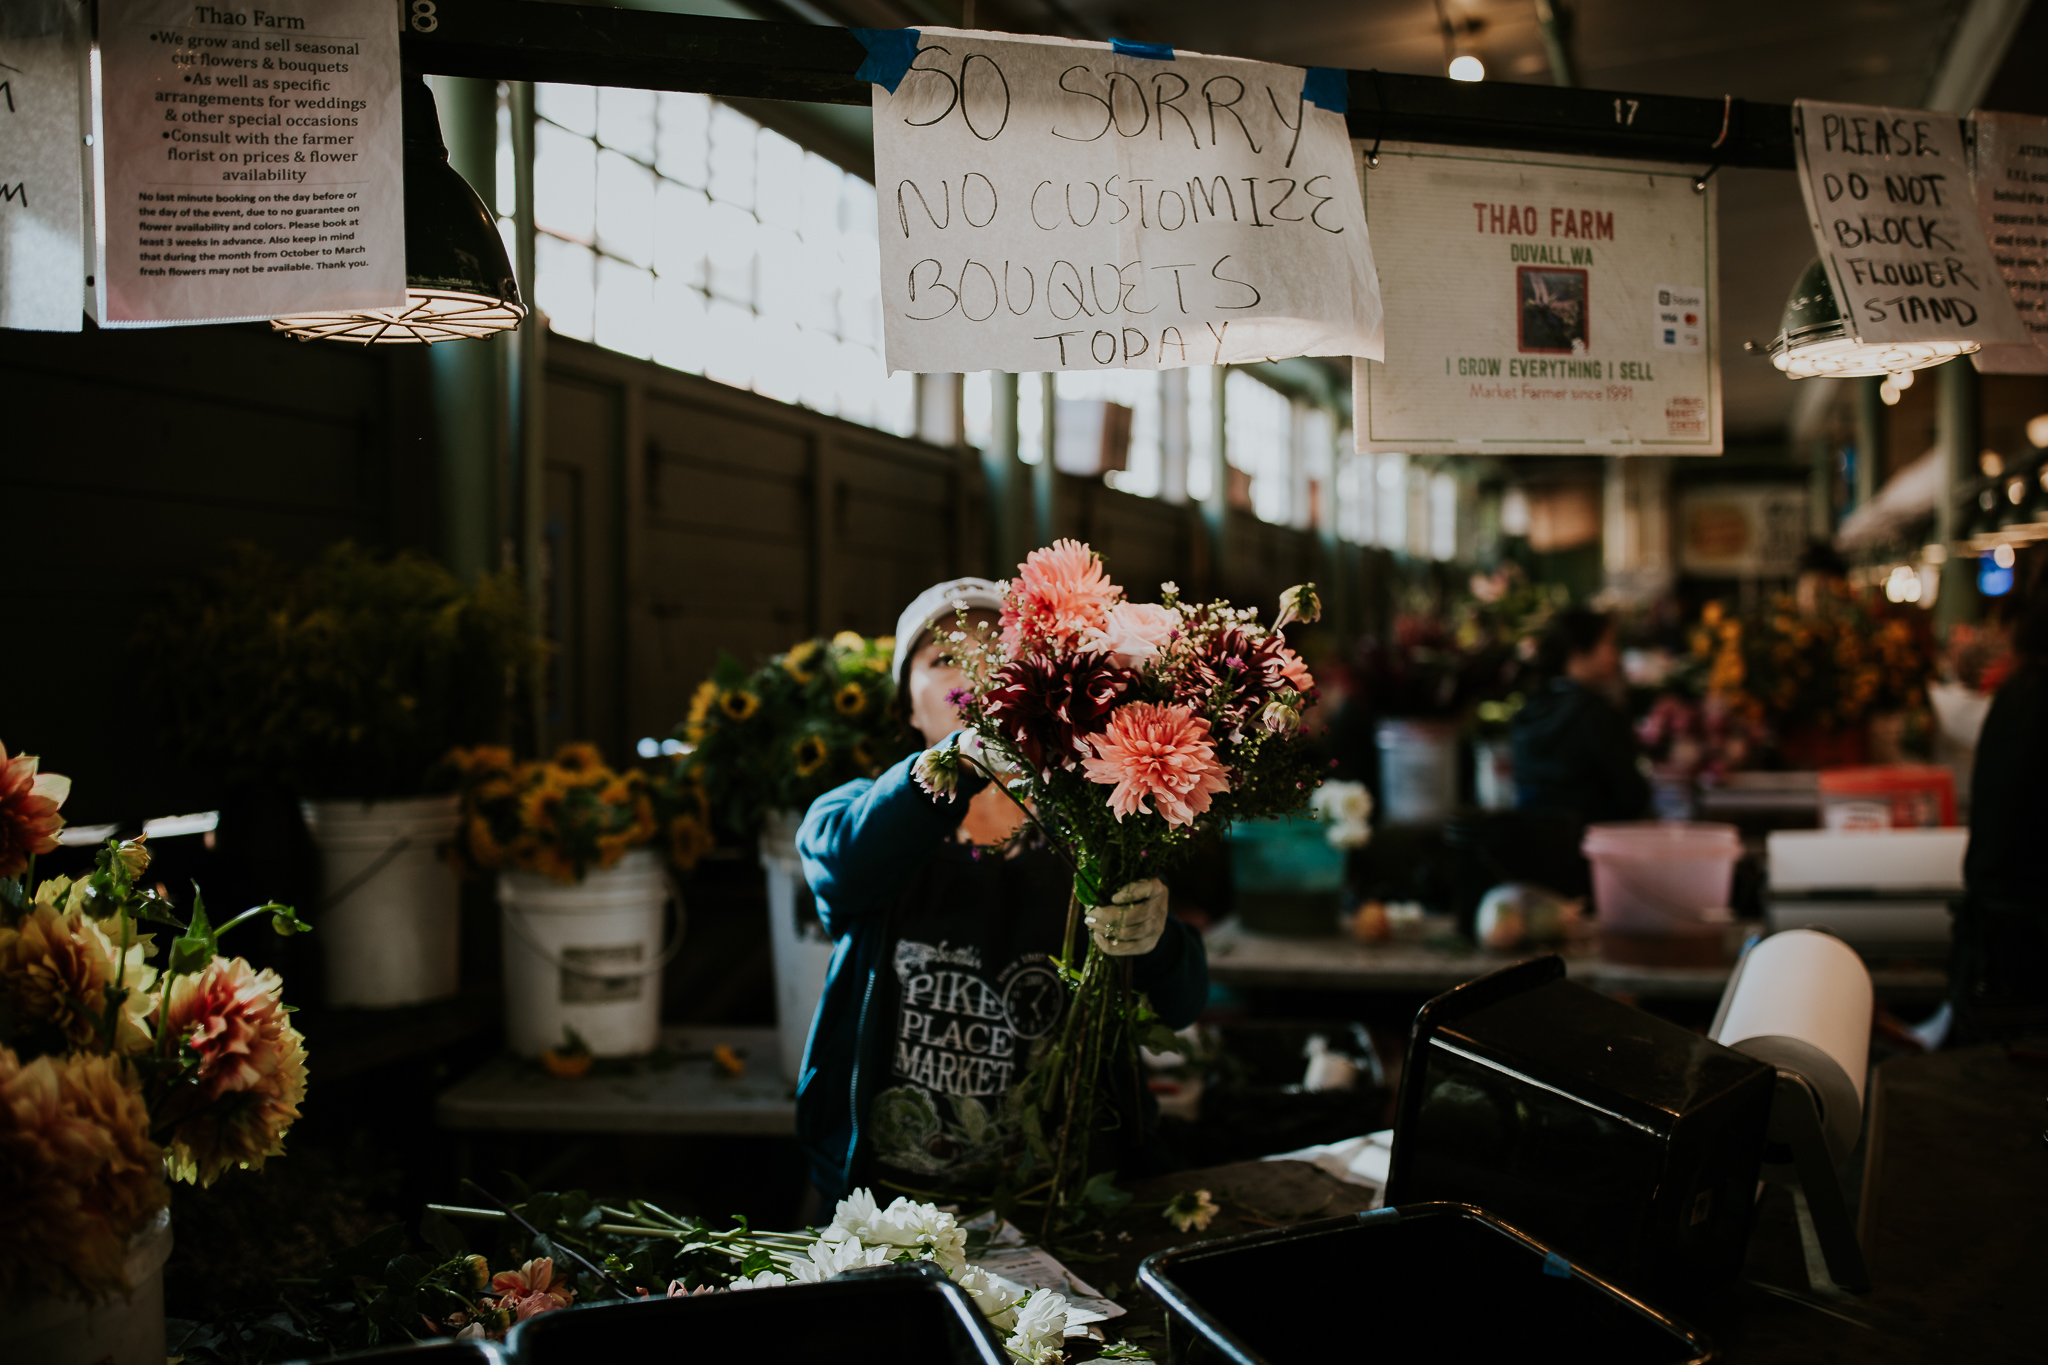 Woman selling fresh flowers at Seattle Public Market